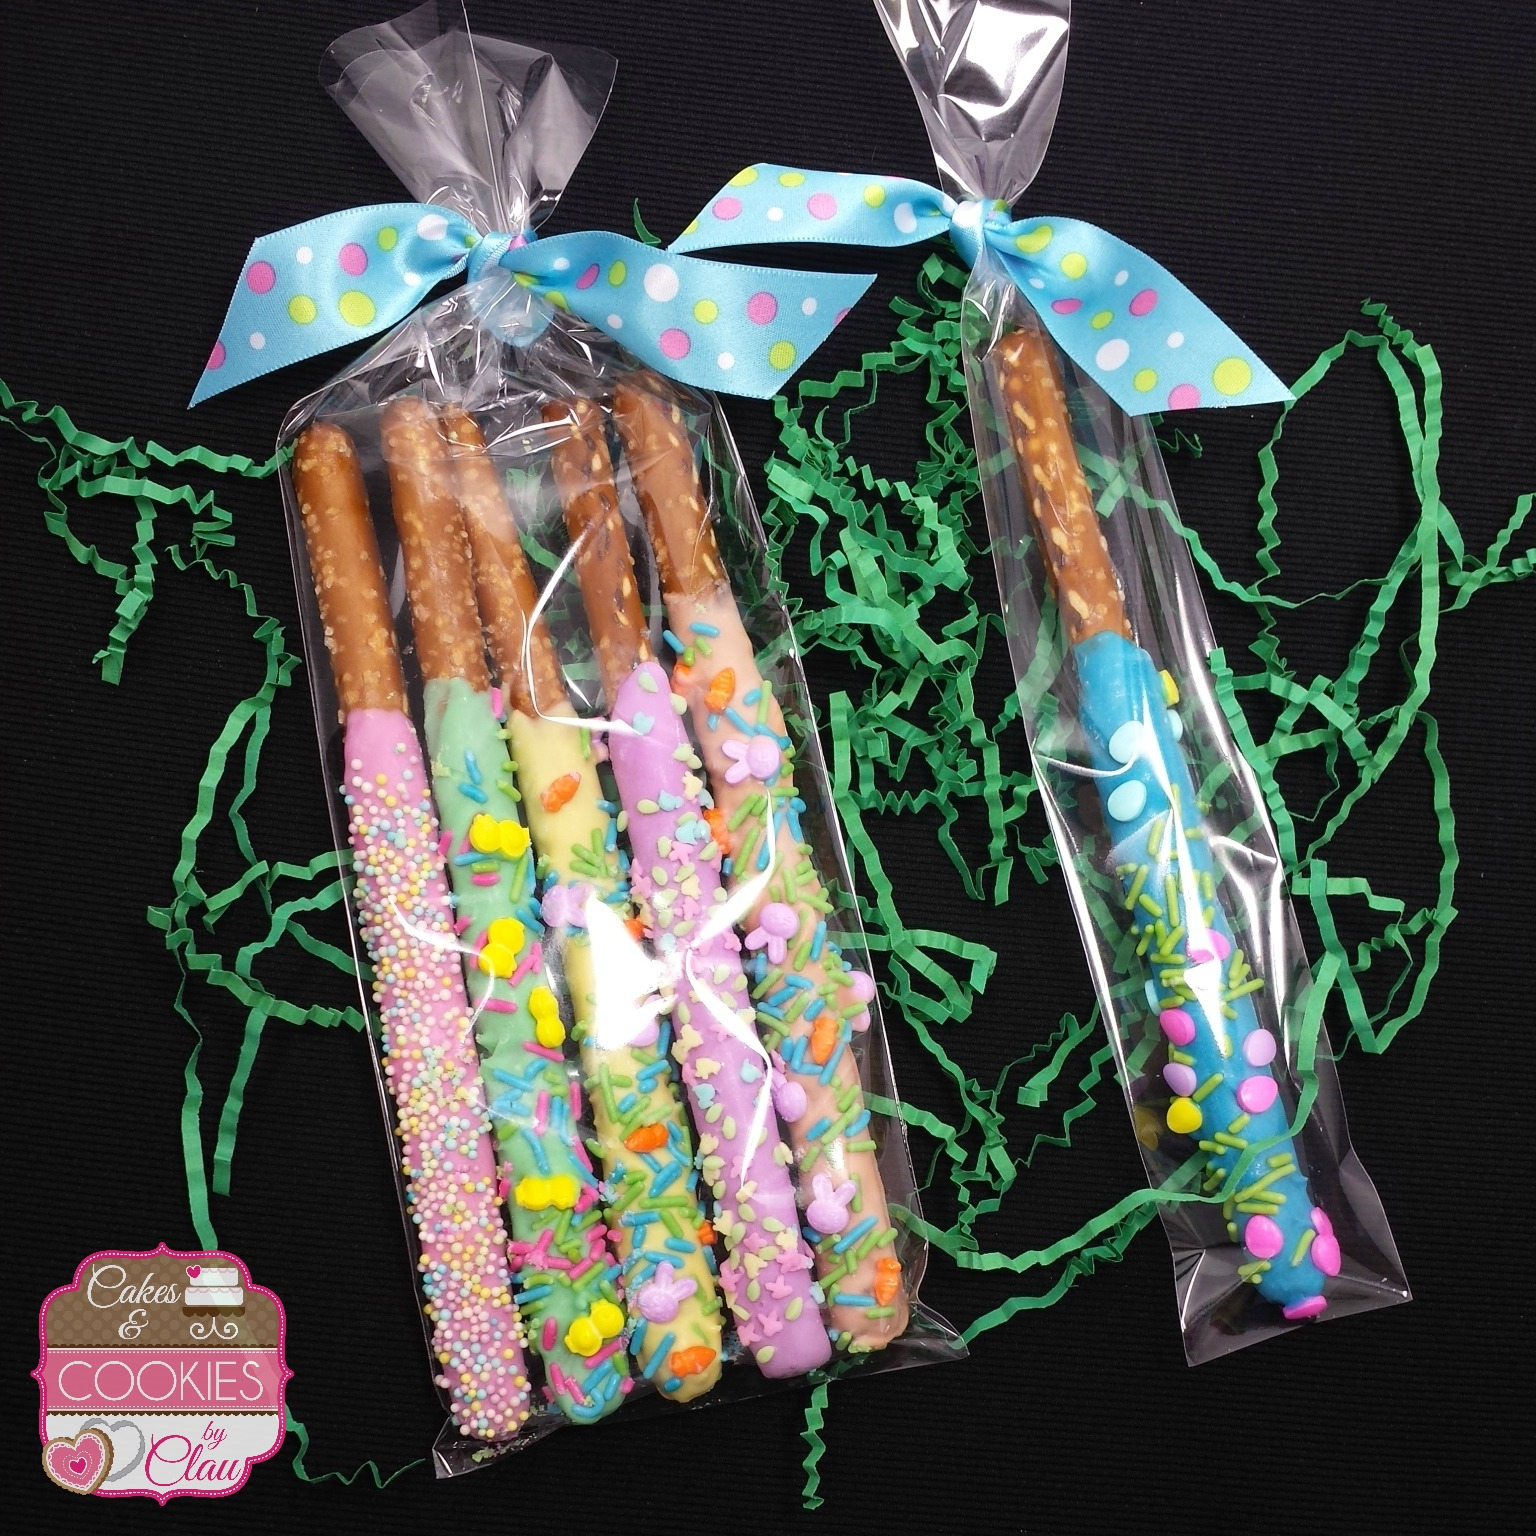 Easter Chocolate Dipped Pretzel Rod